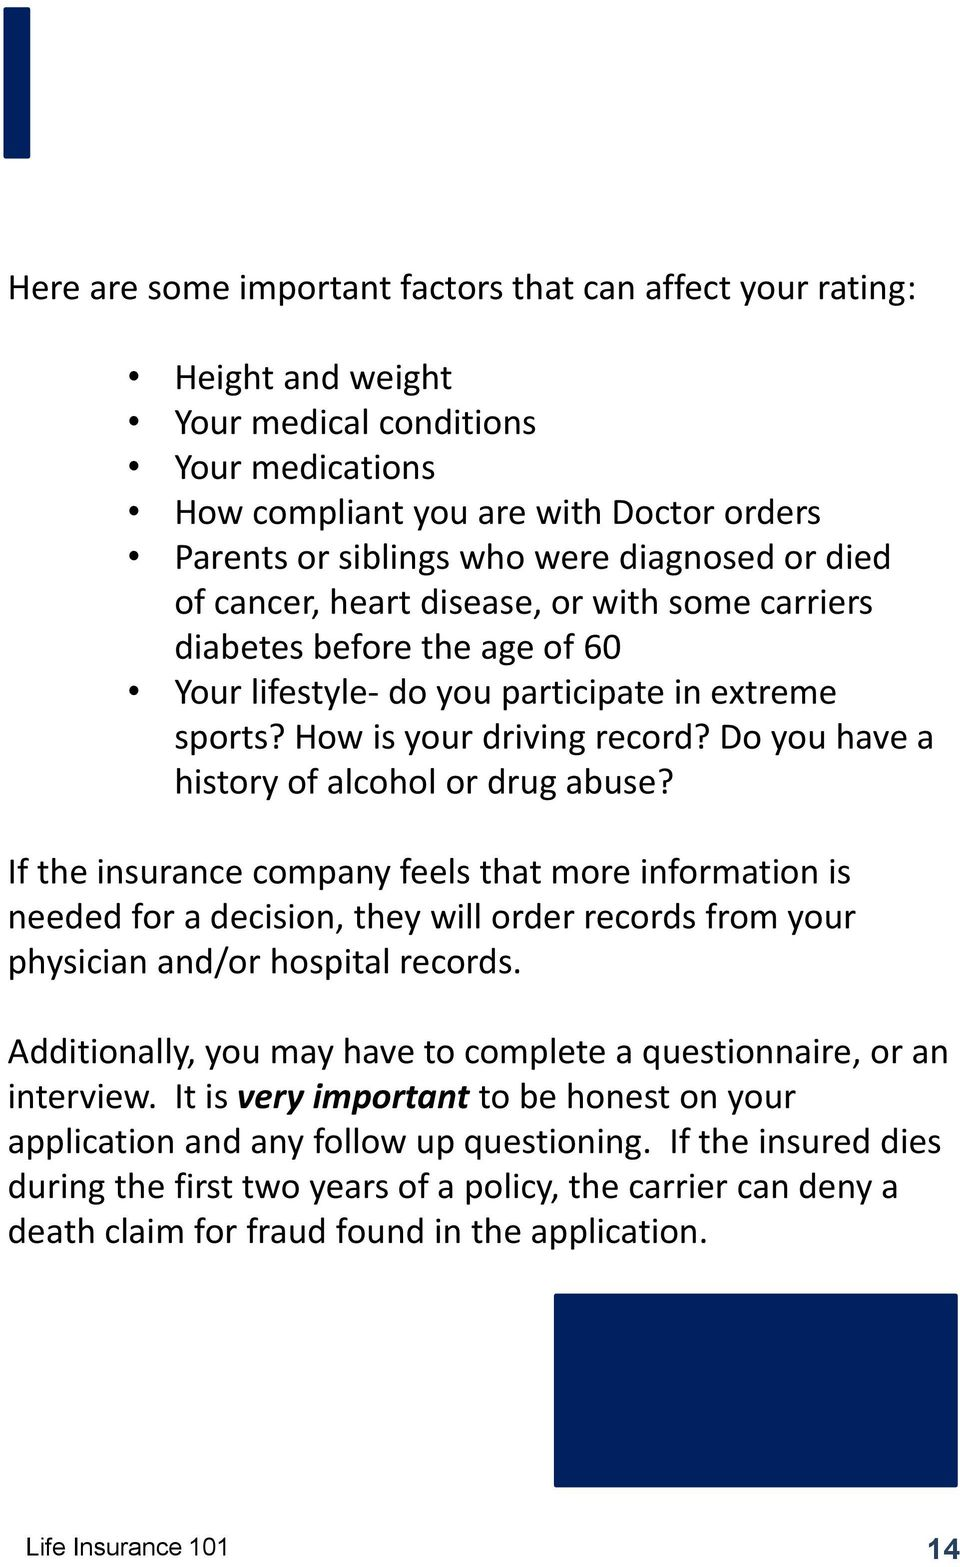 Do you have a history of alcohol or drug abuse? If the insurance company feels that more information is needed for a decision, they will order records from your physician and/or hospital records.